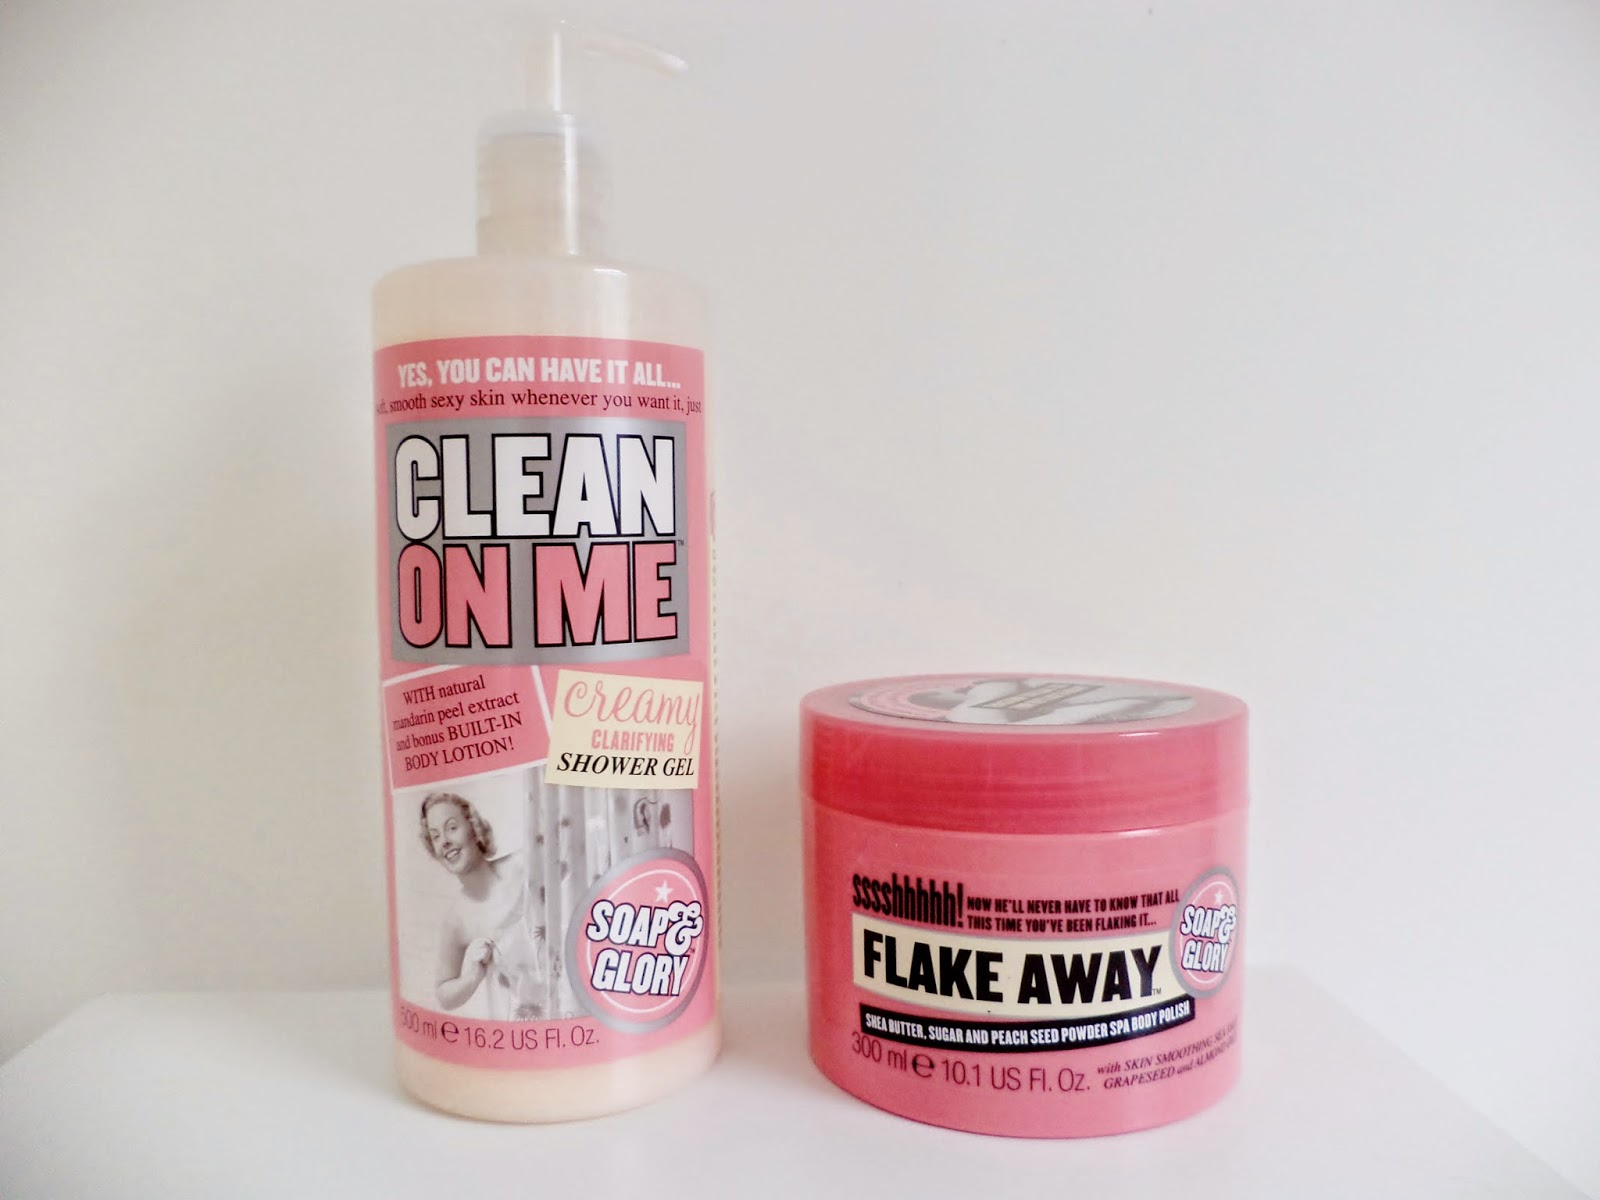 rediscovering soap and glory